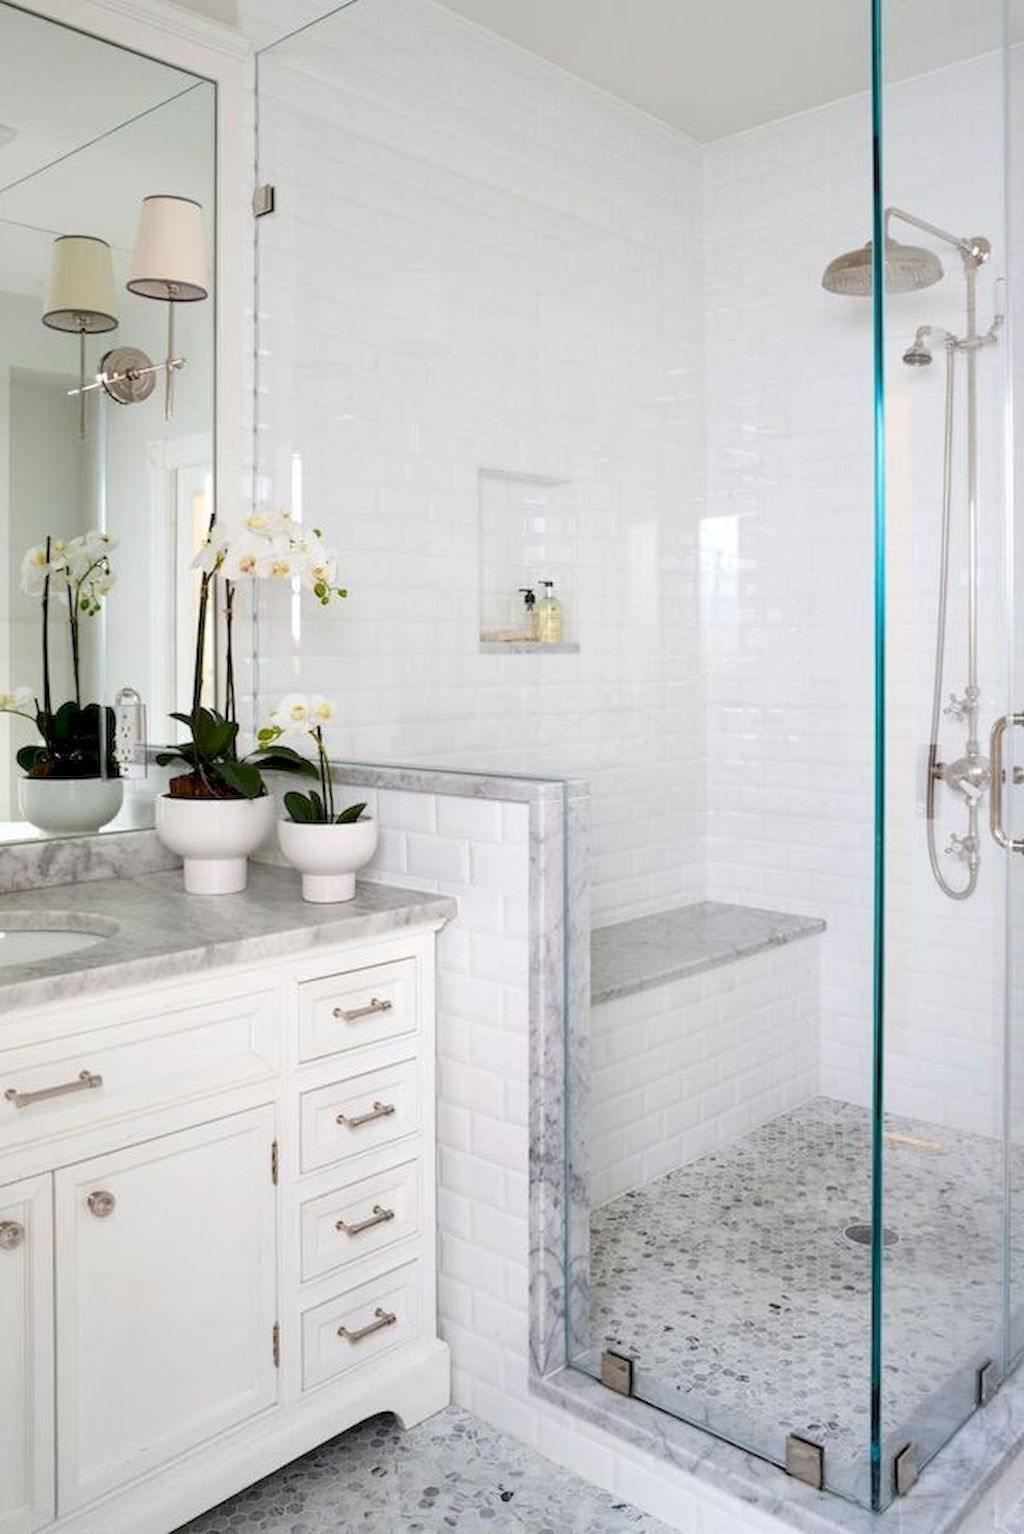 Cool 55 Cool Small Master Bathroom Remodel Ideas Https://homeastern.com/